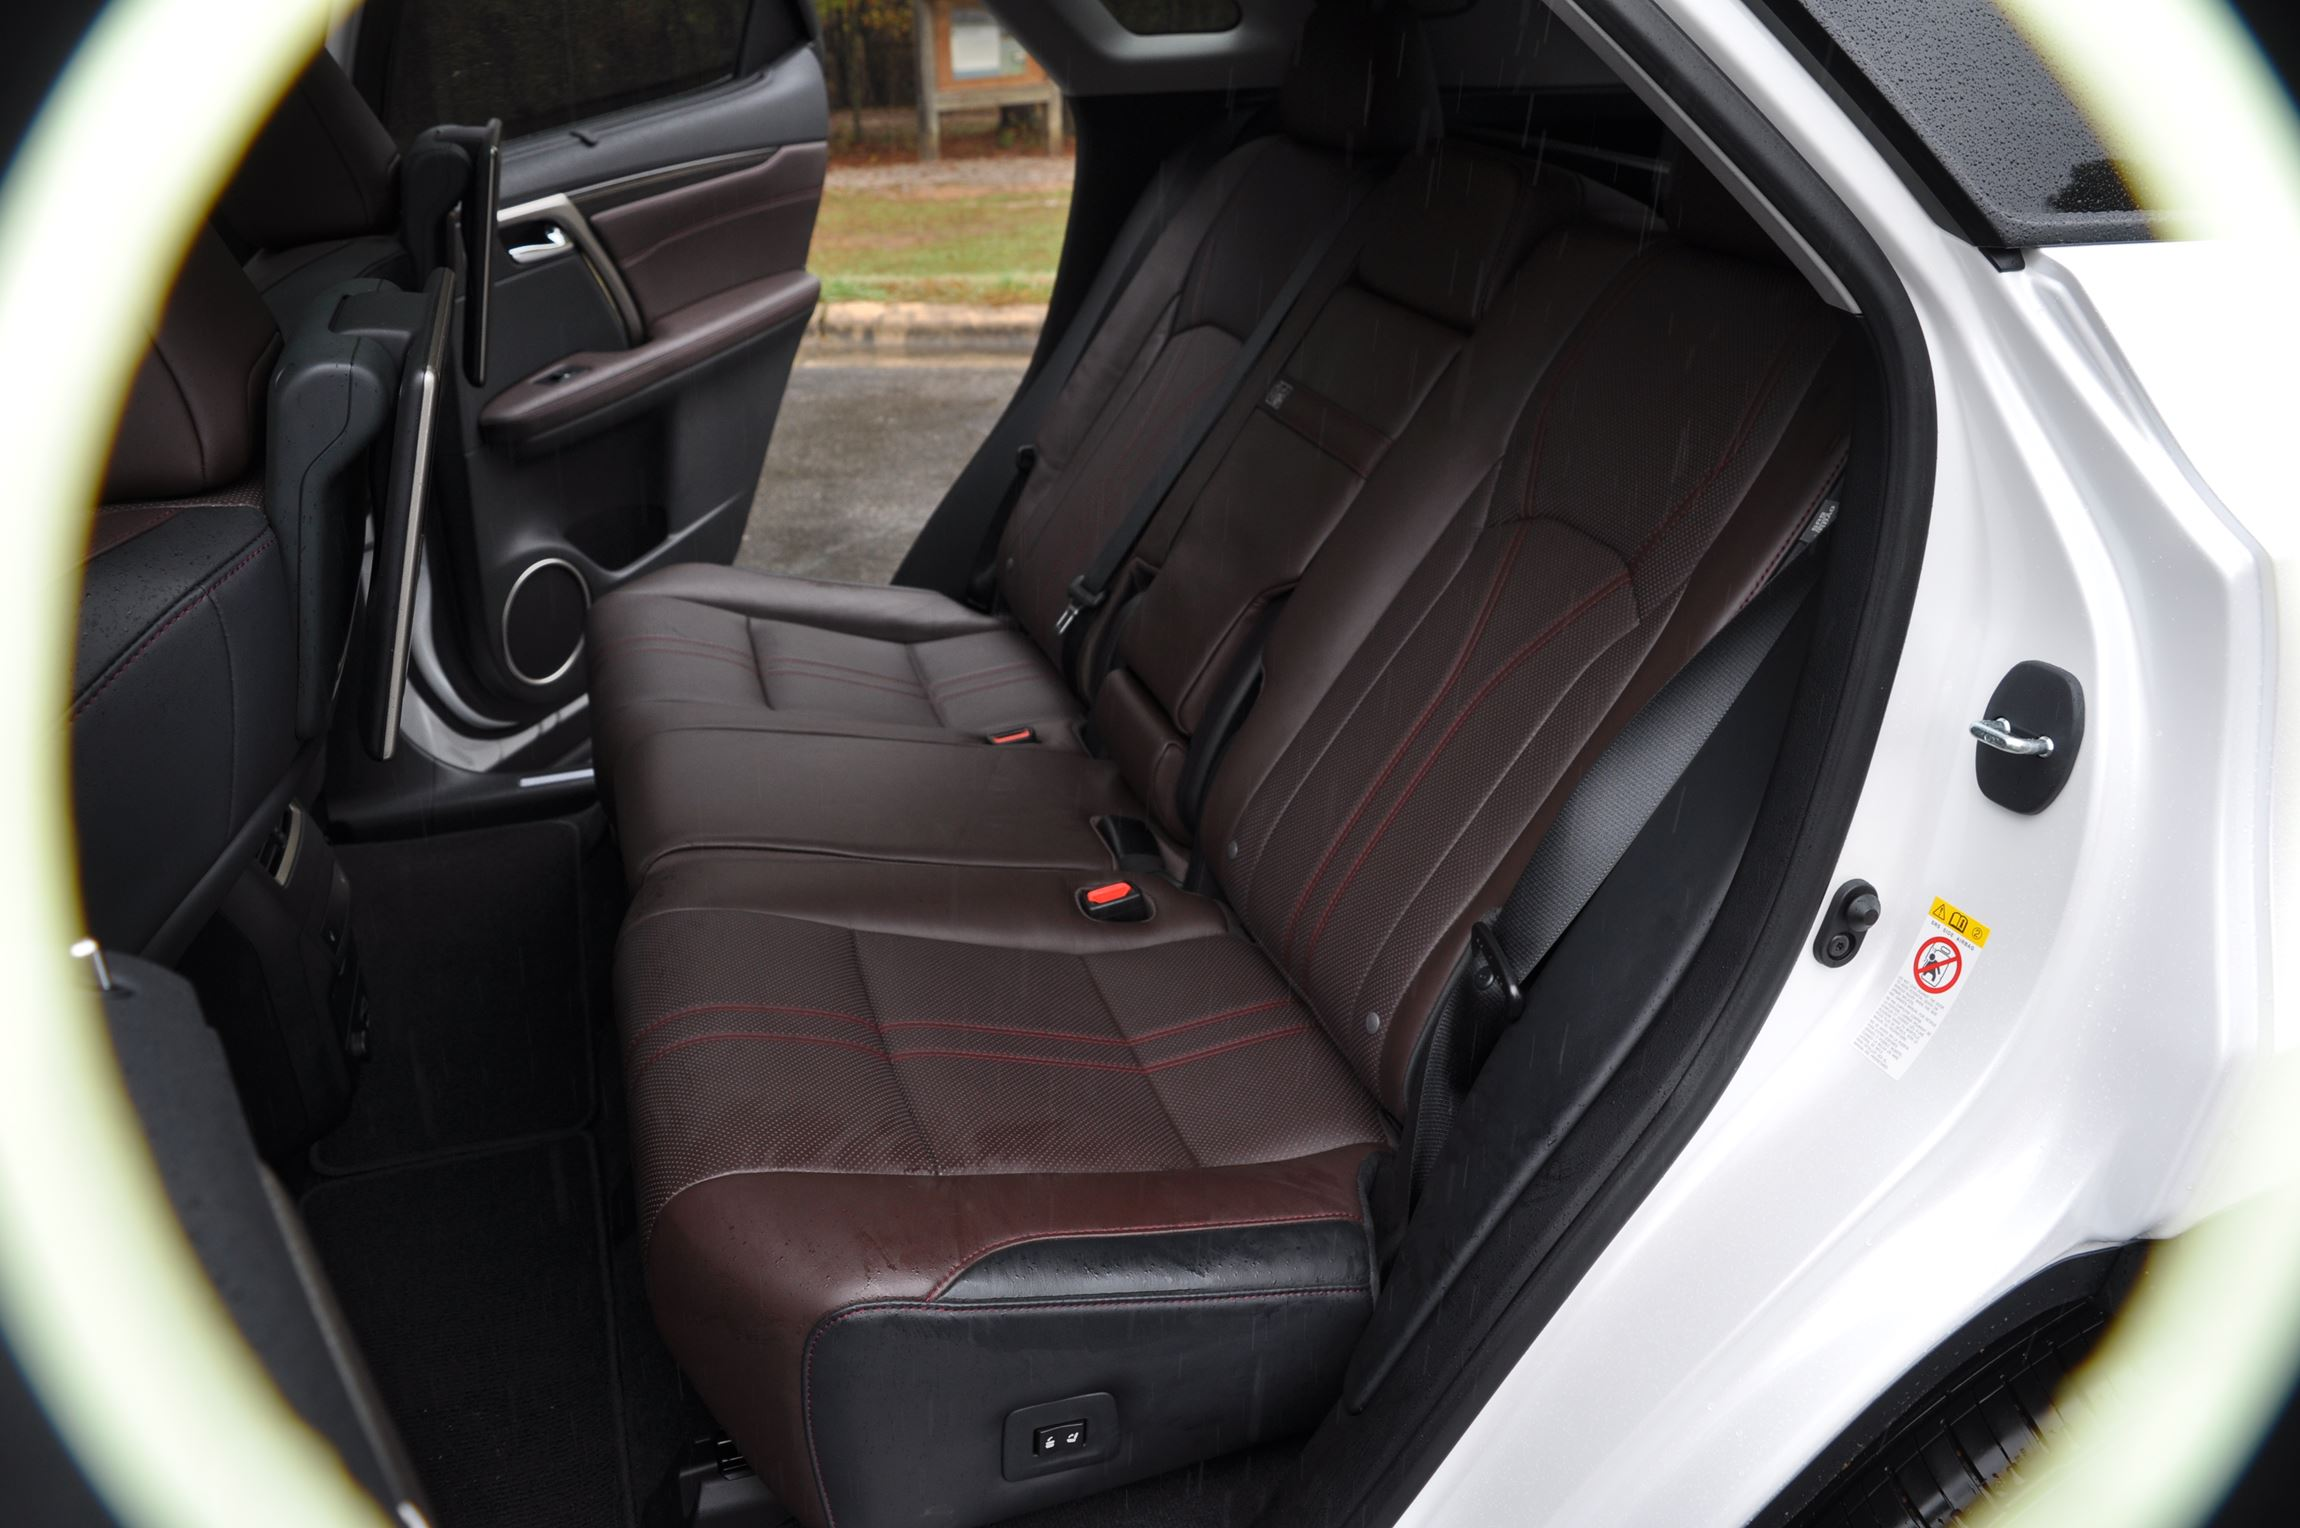 2016 lexus rx350 interior noble brown sapele wood 9. Black Bedroom Furniture Sets. Home Design Ideas